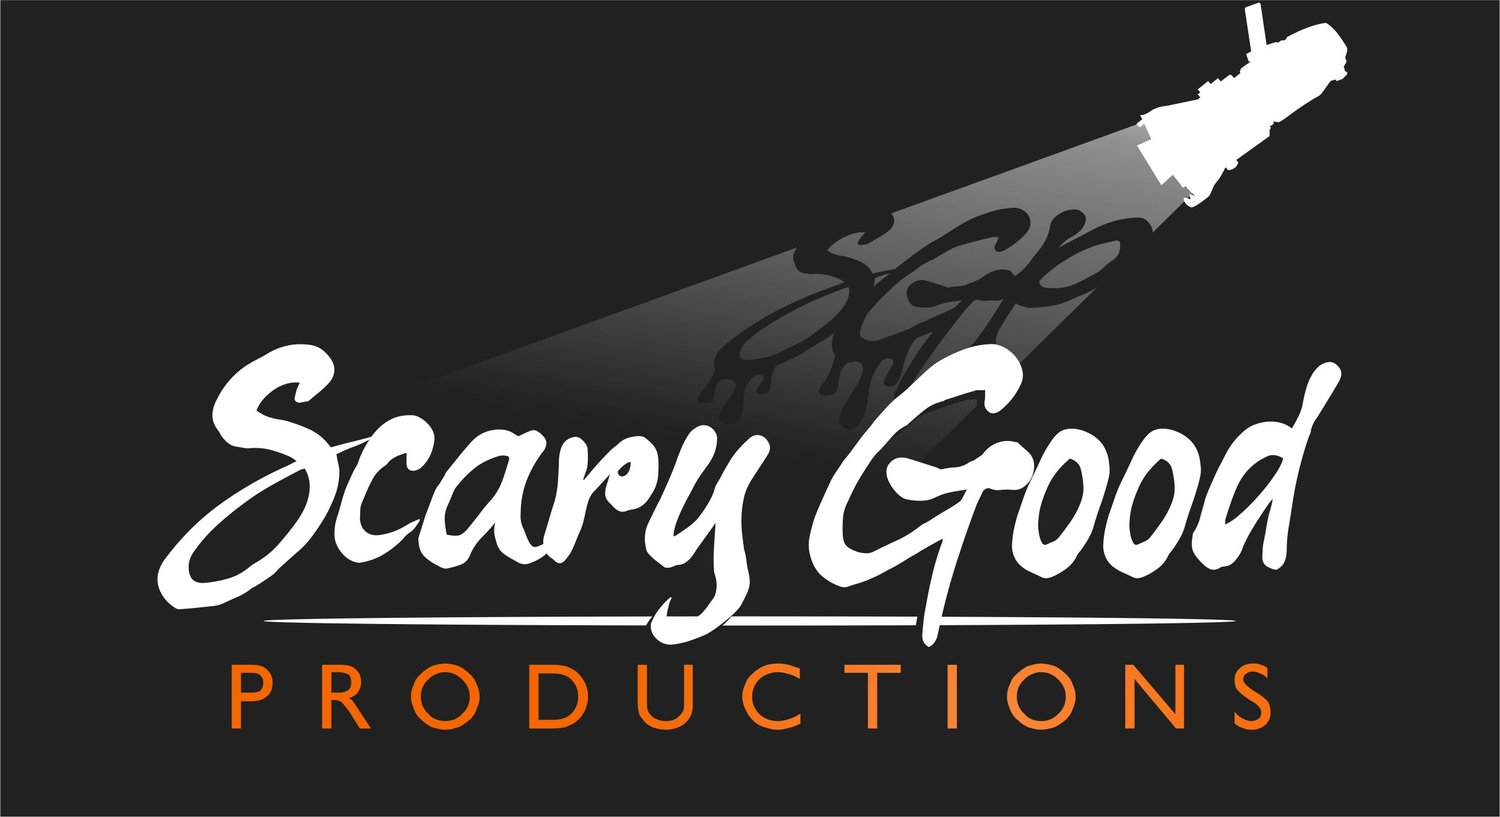 Scary Good Productions